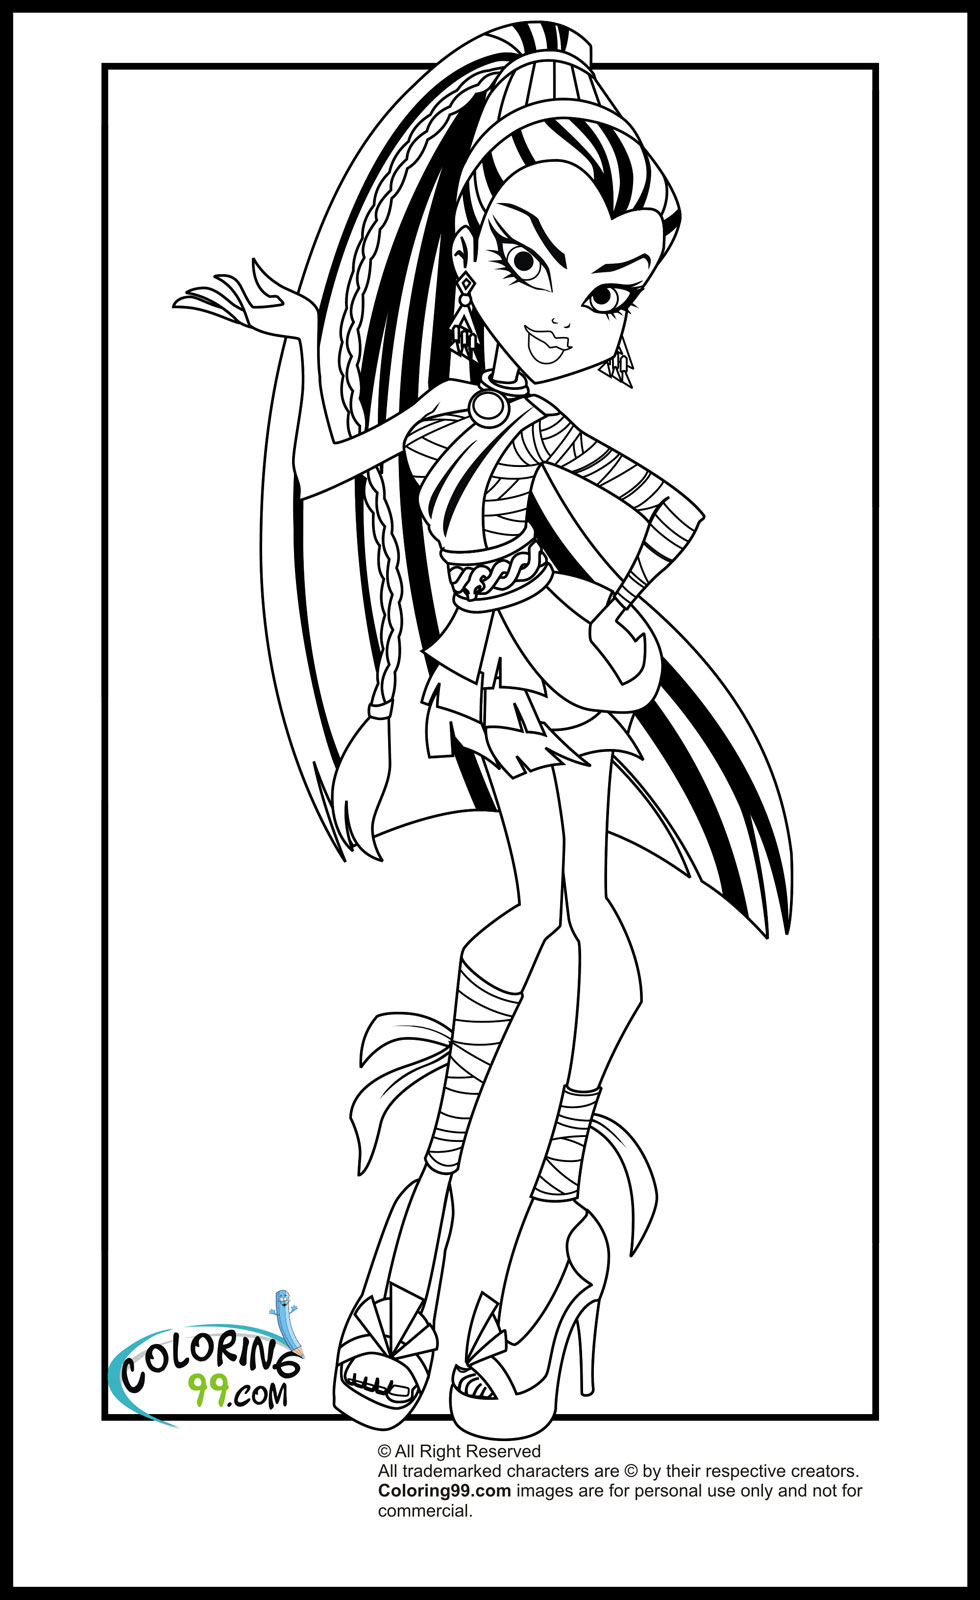 monster high color pages free monster high coloring pages 2018 dr odd monster color high pages free